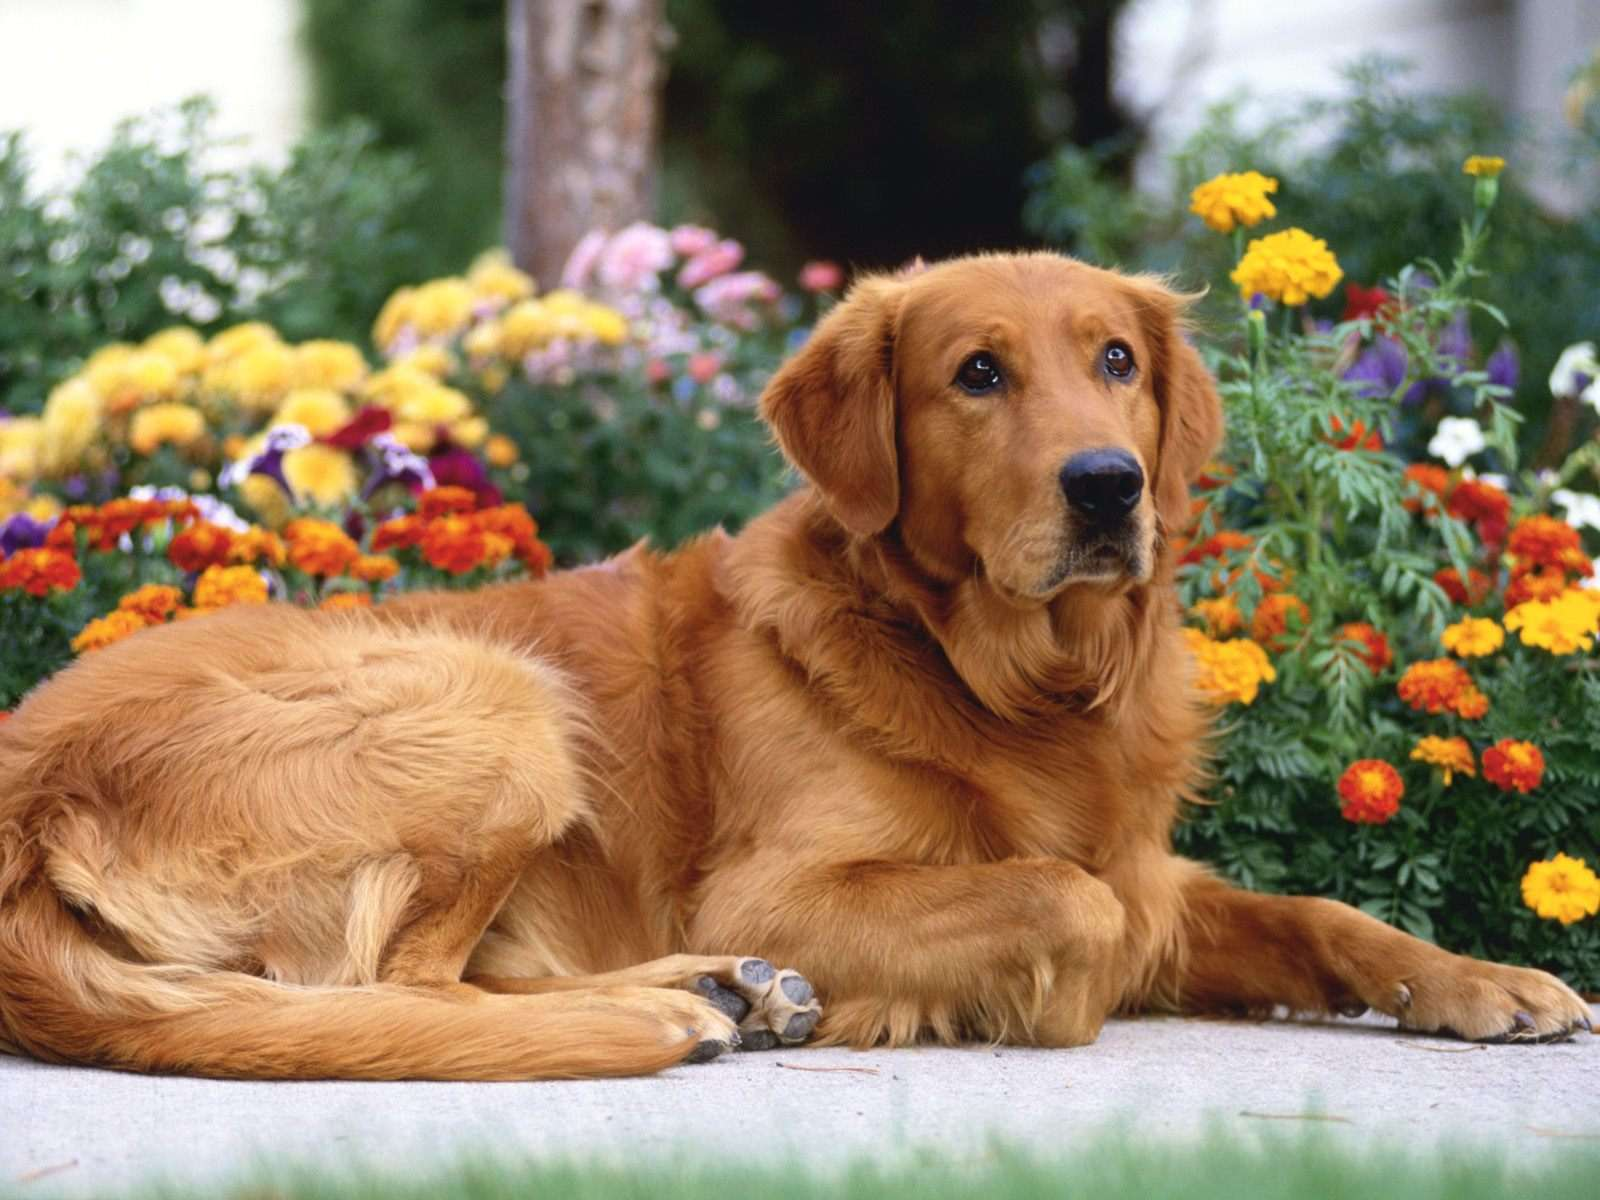 Golden Retriever Dogs Wallpaper Hd Ardusat Org